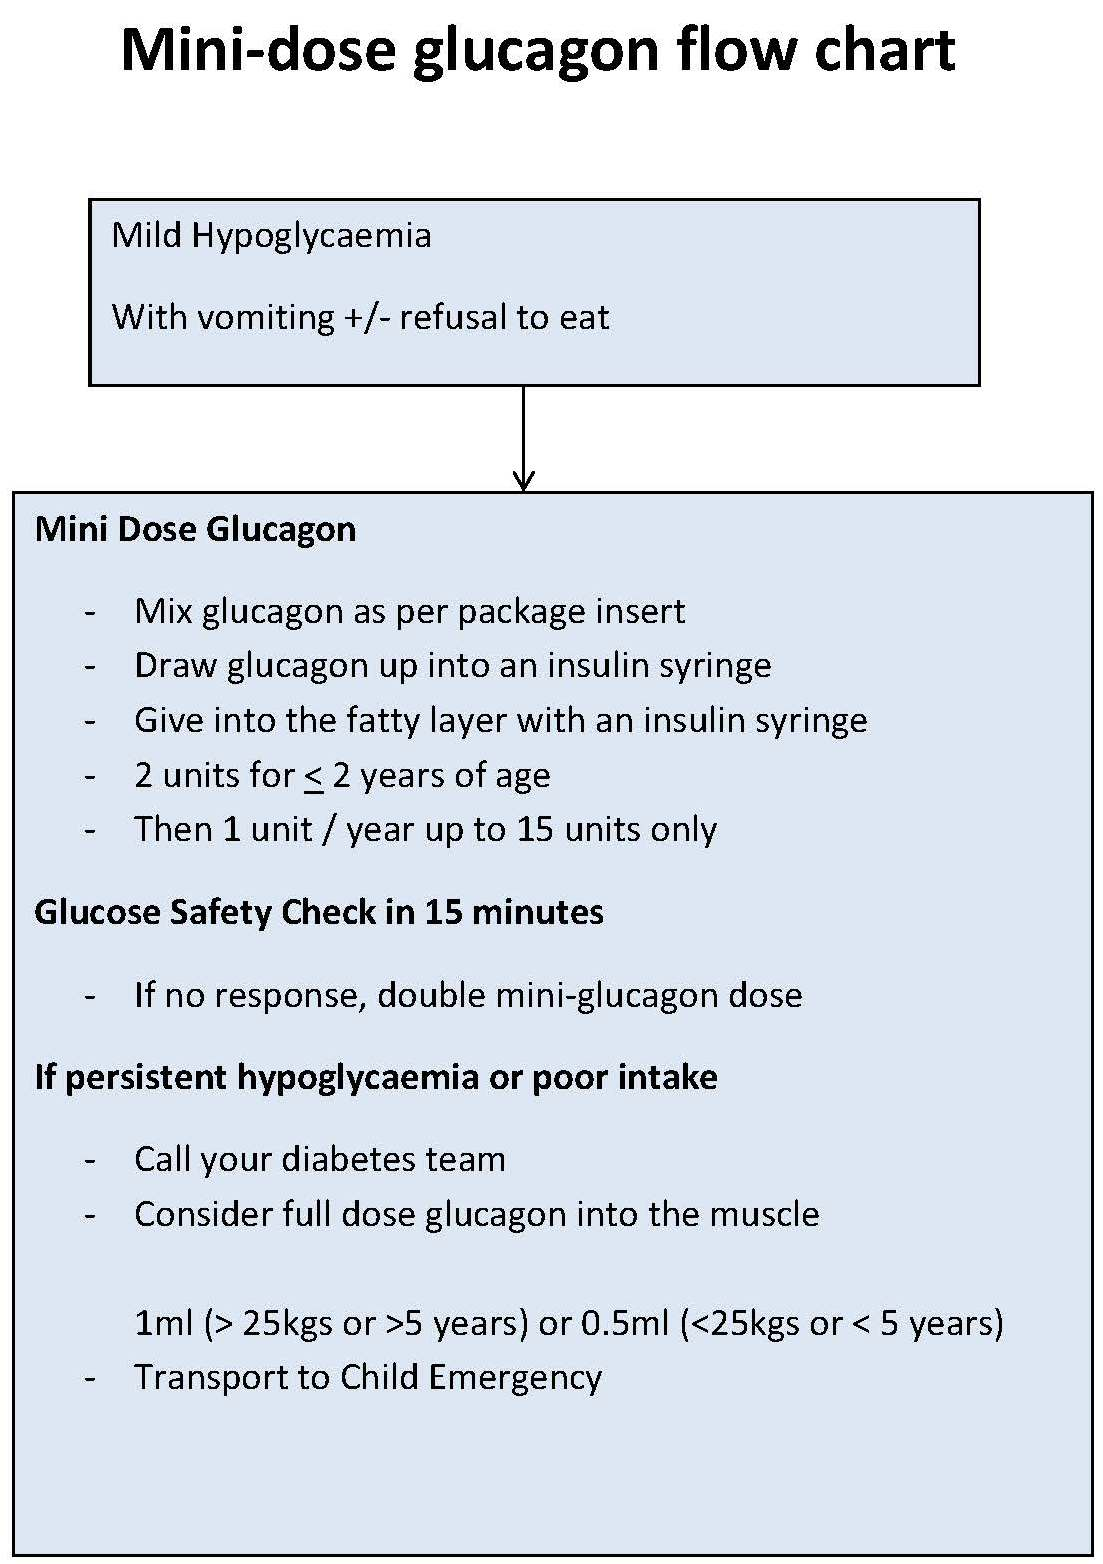 Mini dose glucagon flow chart